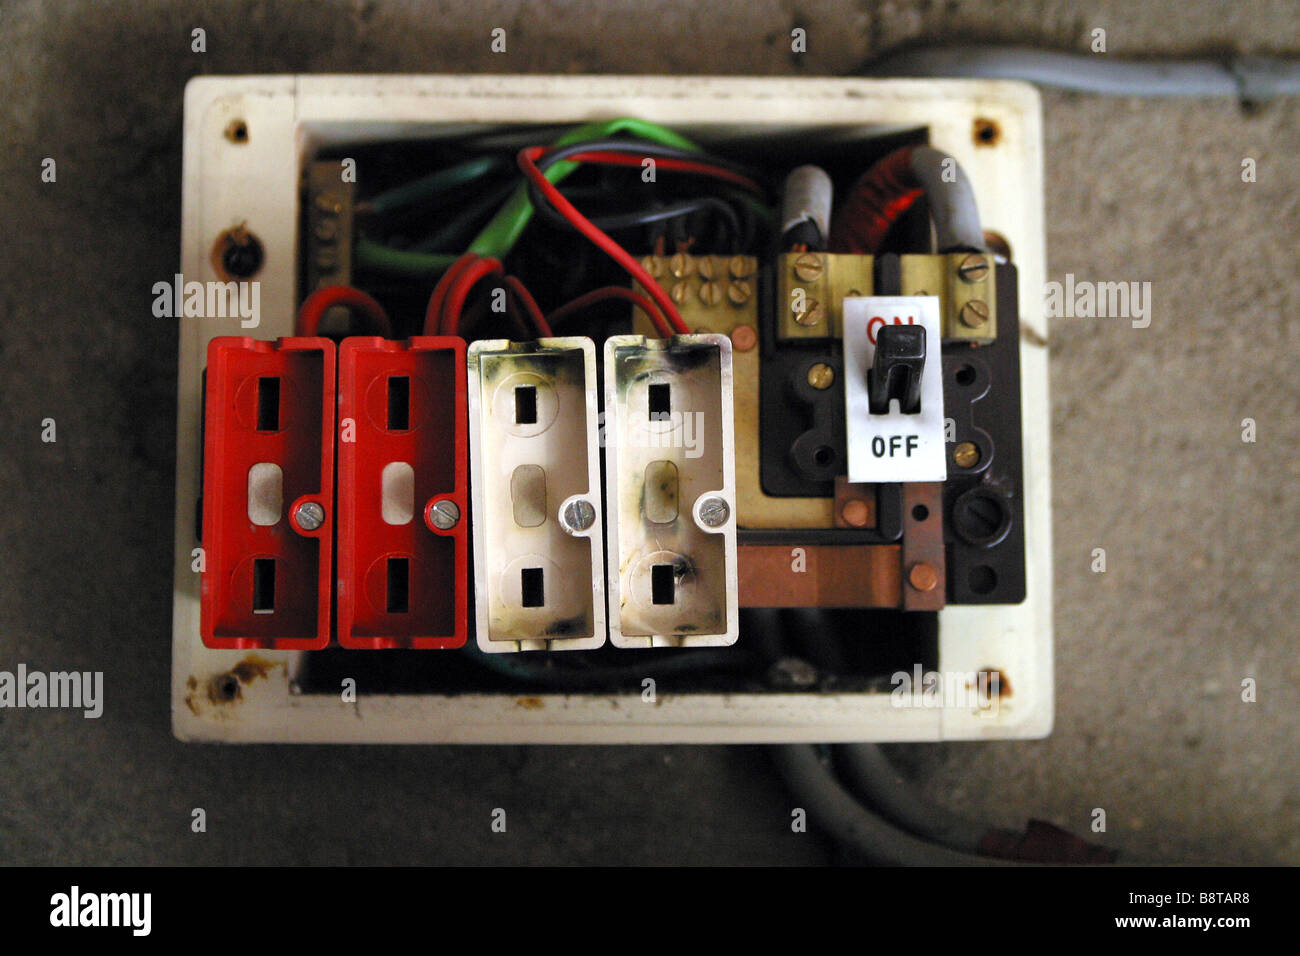 Fuses For Fuse Box House Simple Wiring Diagram Schema Old Screw In Fuse  Boxes Replacing Old Fuse Box